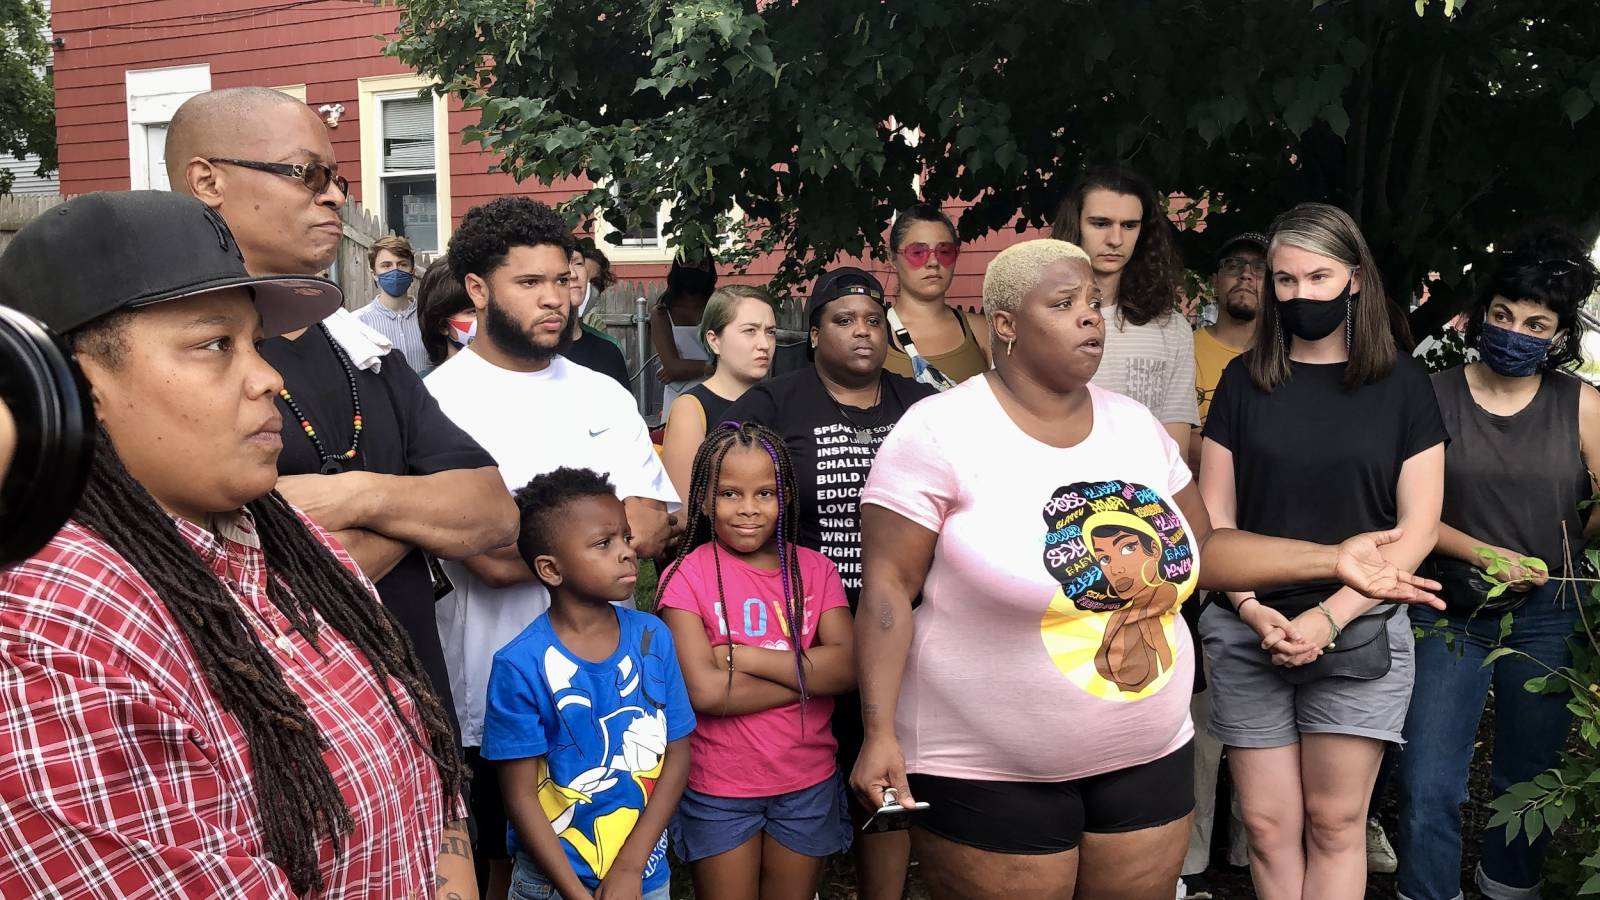 Providence family facing harassment and violence after police altercation